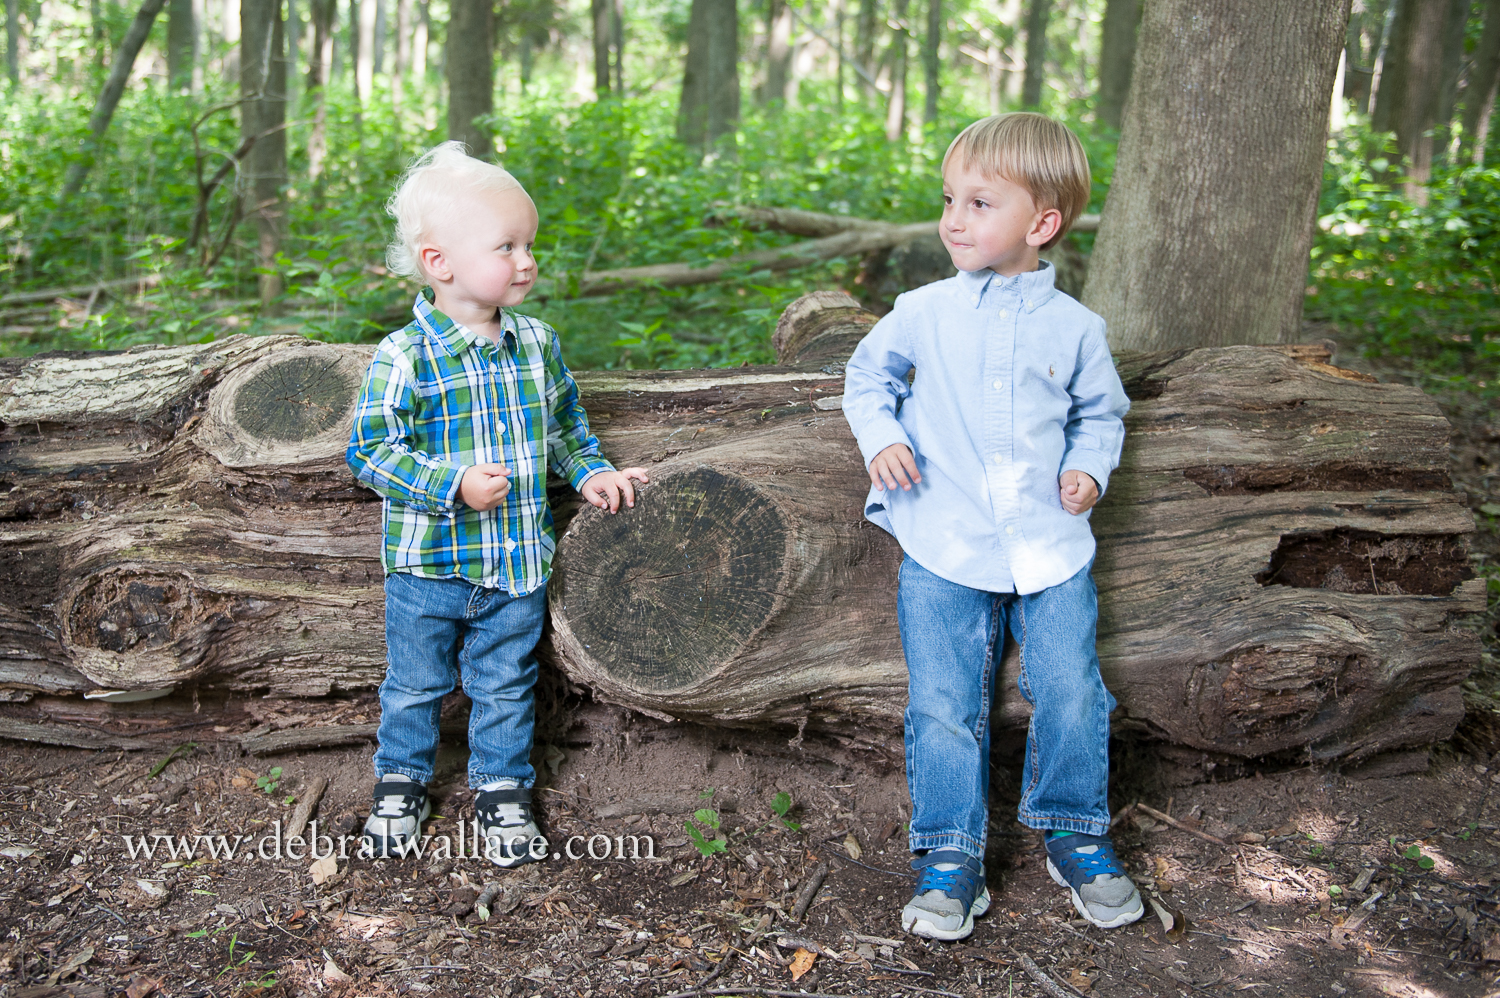 Mendon ponds sibling photography-8432